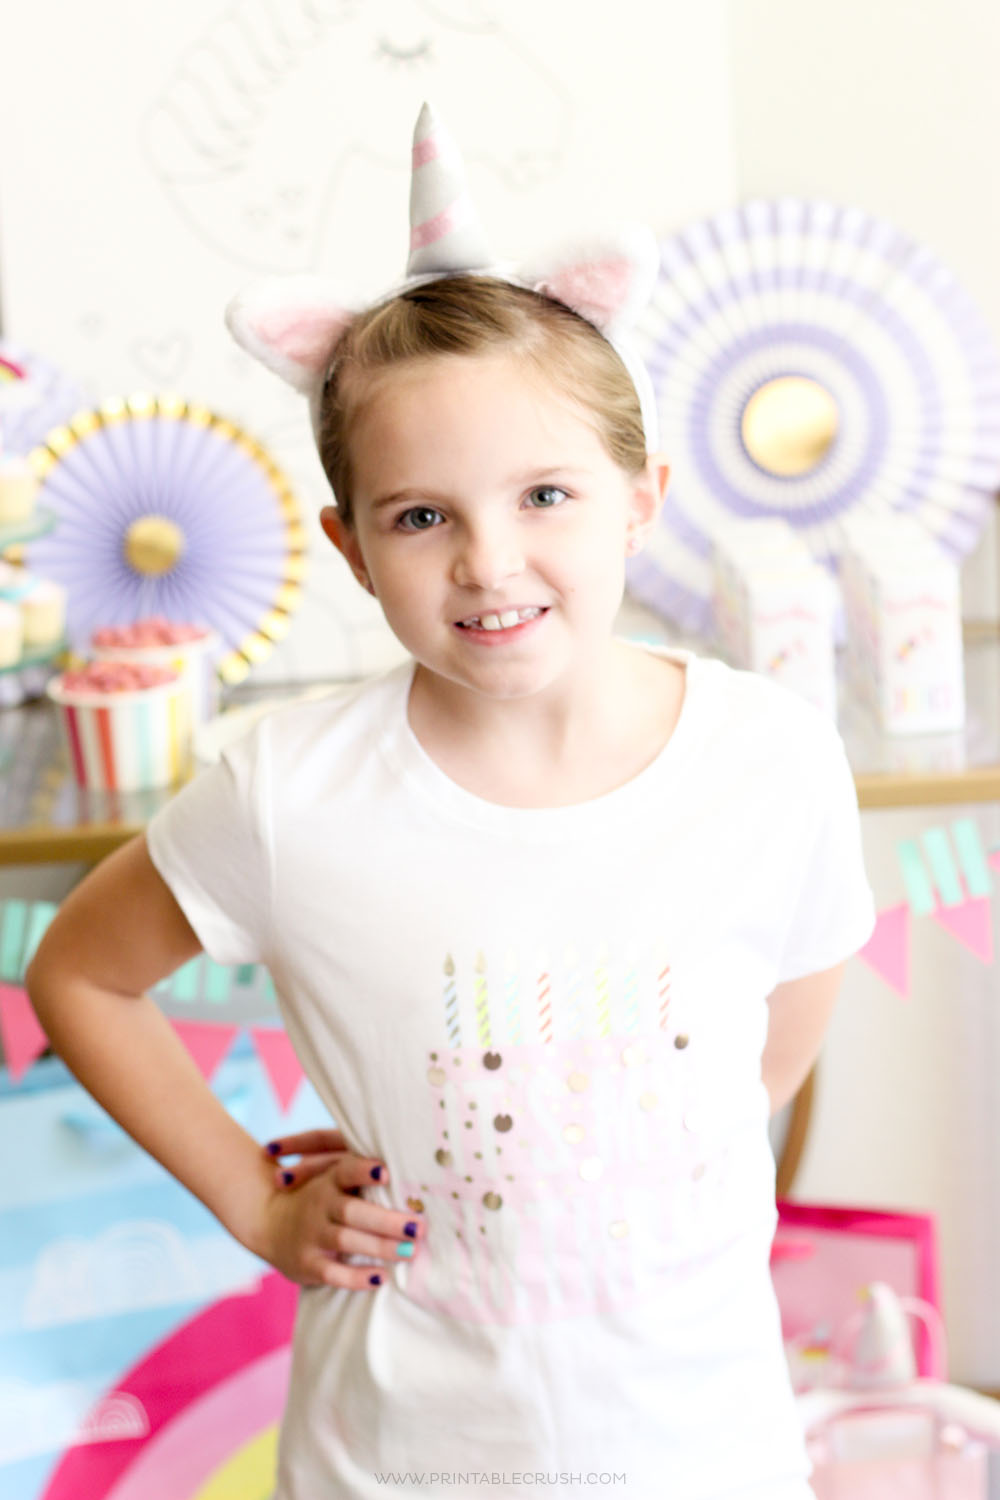 Throw this budget friendly unicorn party in only one day with these simple party planning tips!